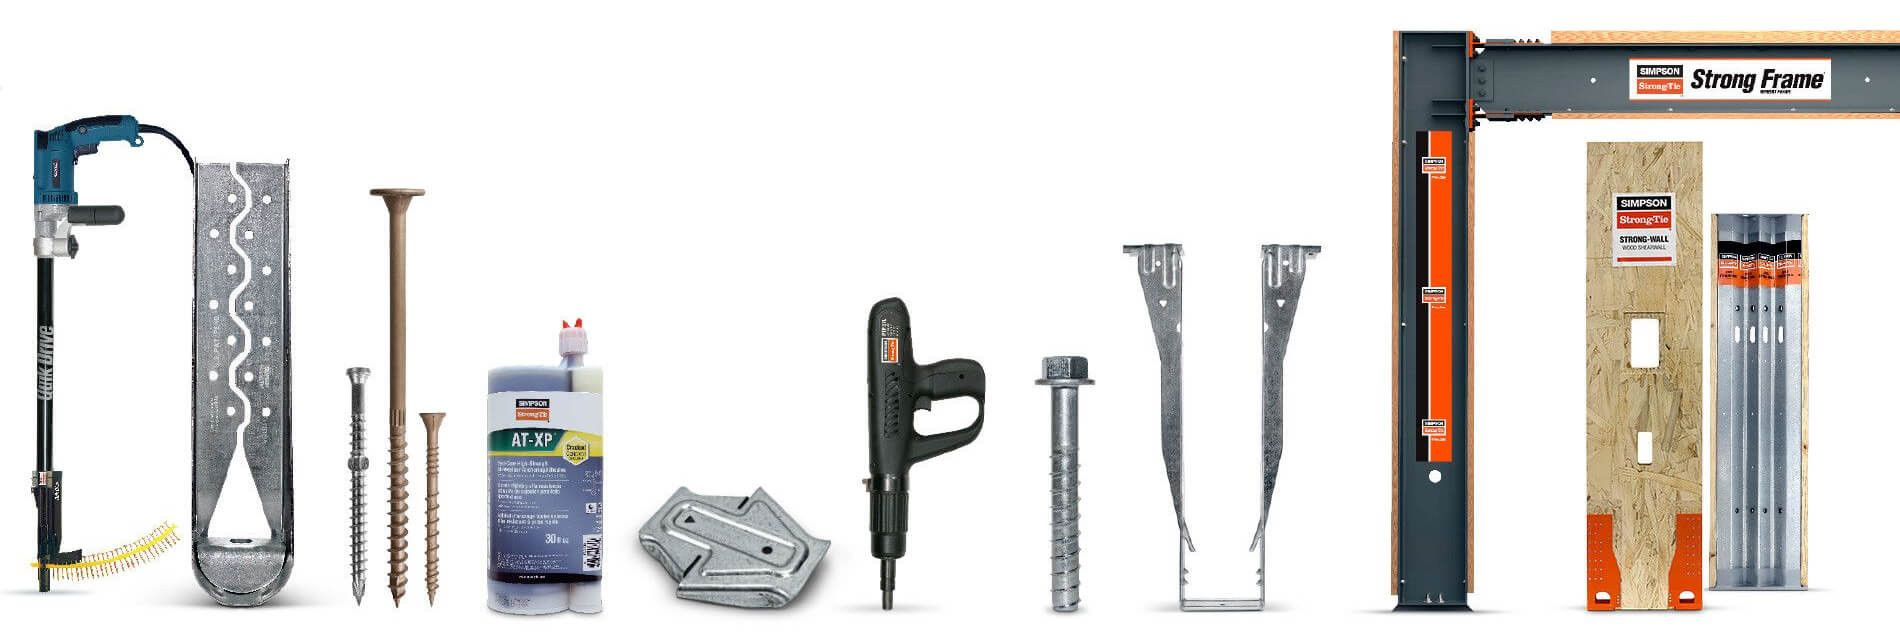 strong-tie assortment of tools and fasteners